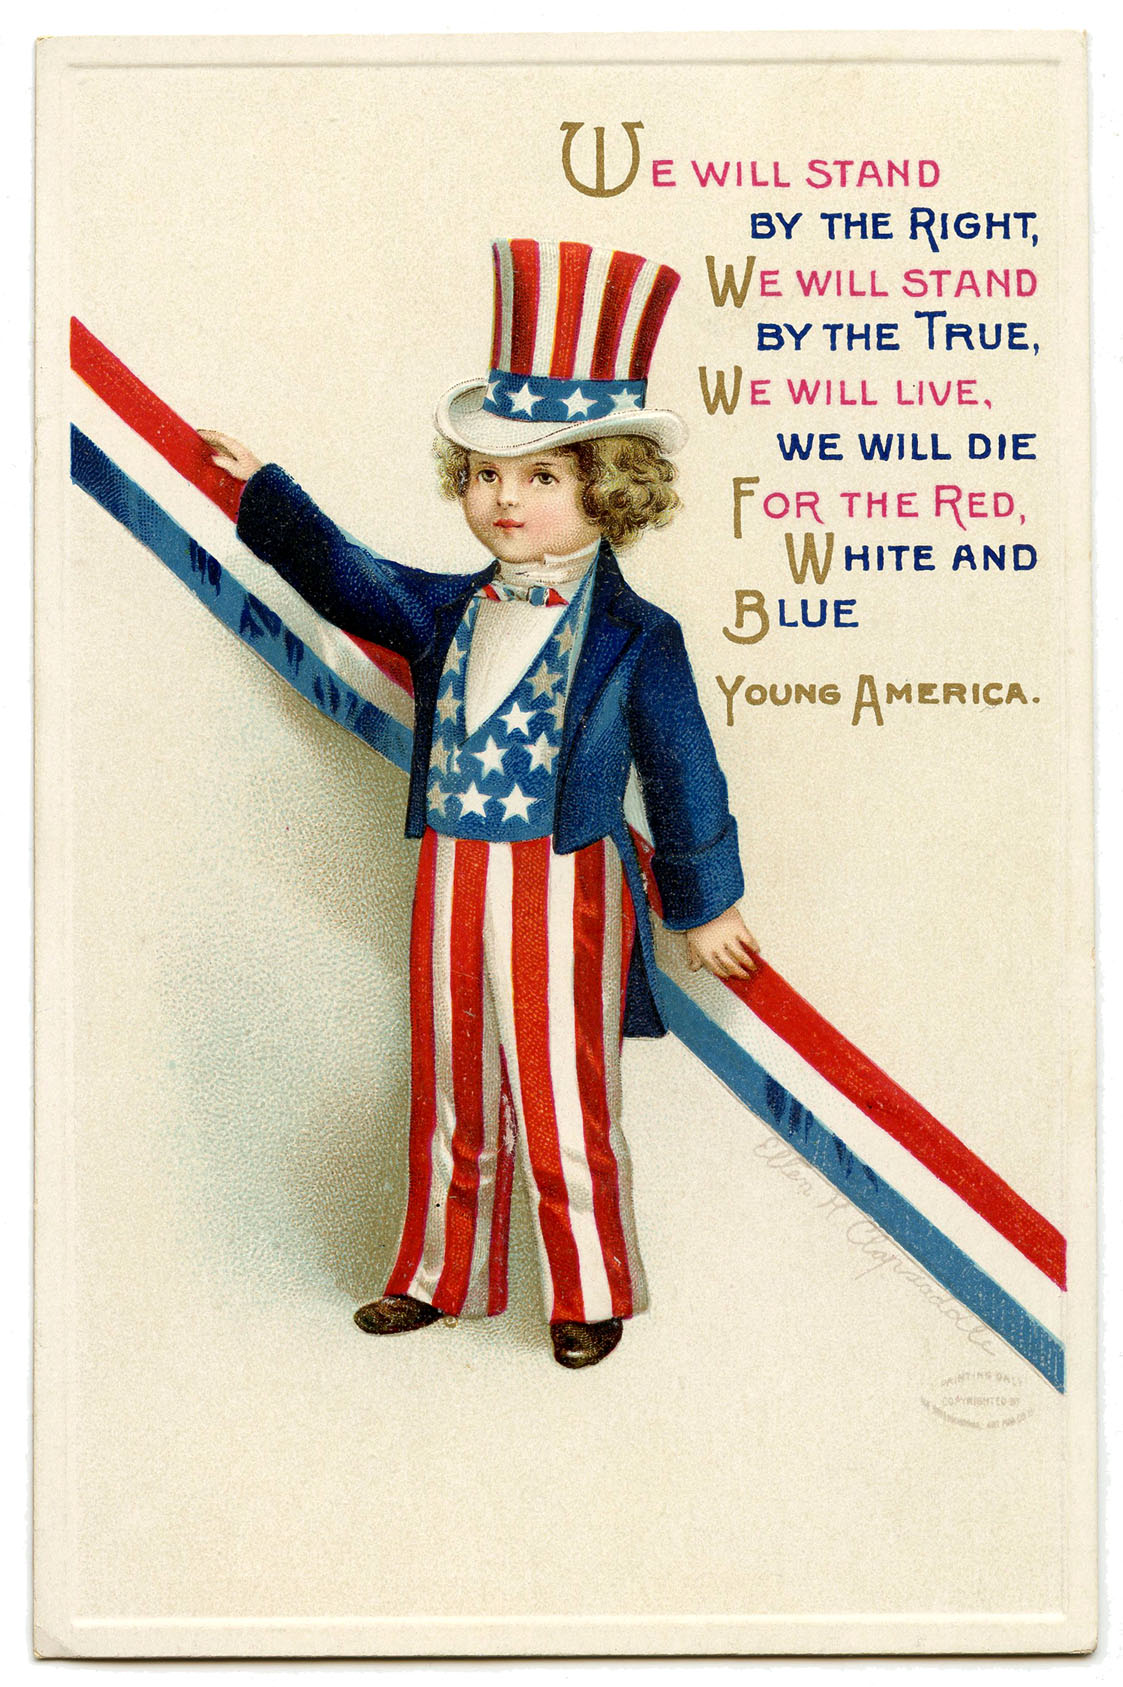 Vintage Uncle Sam Image Patriotic